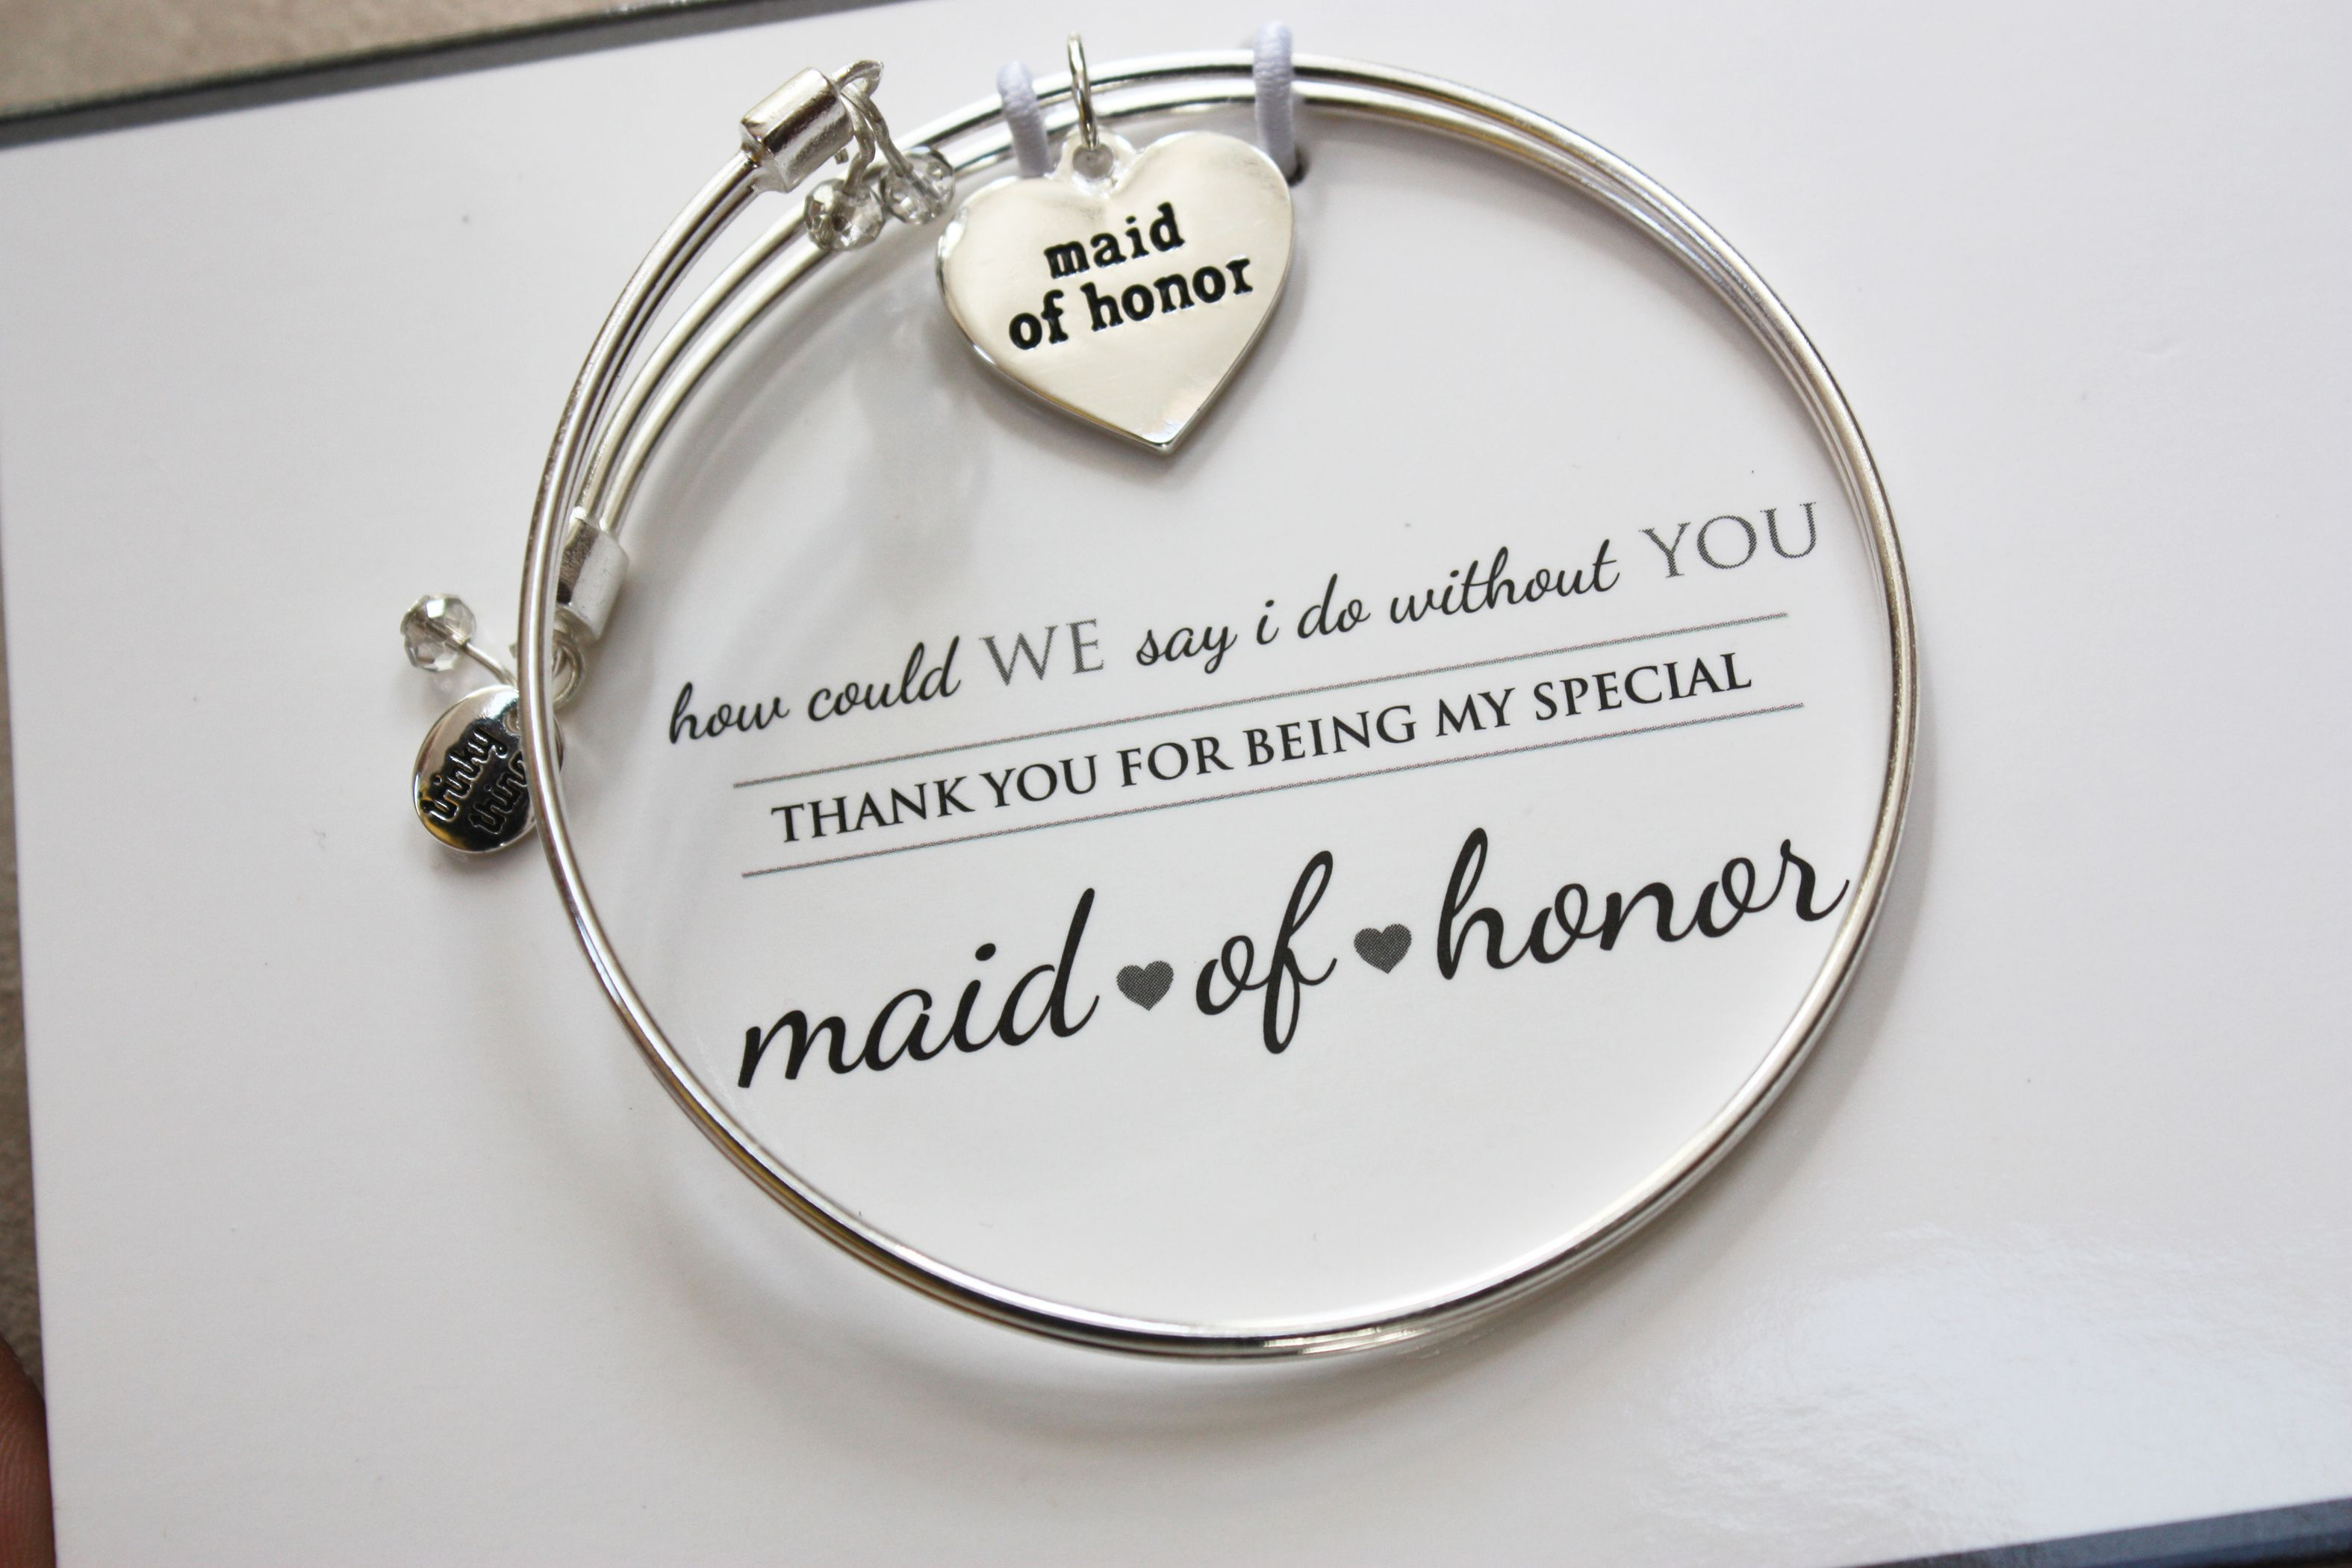 Maid of Honor - Meaningful Message Bracelet Set in Stainless Steel ...